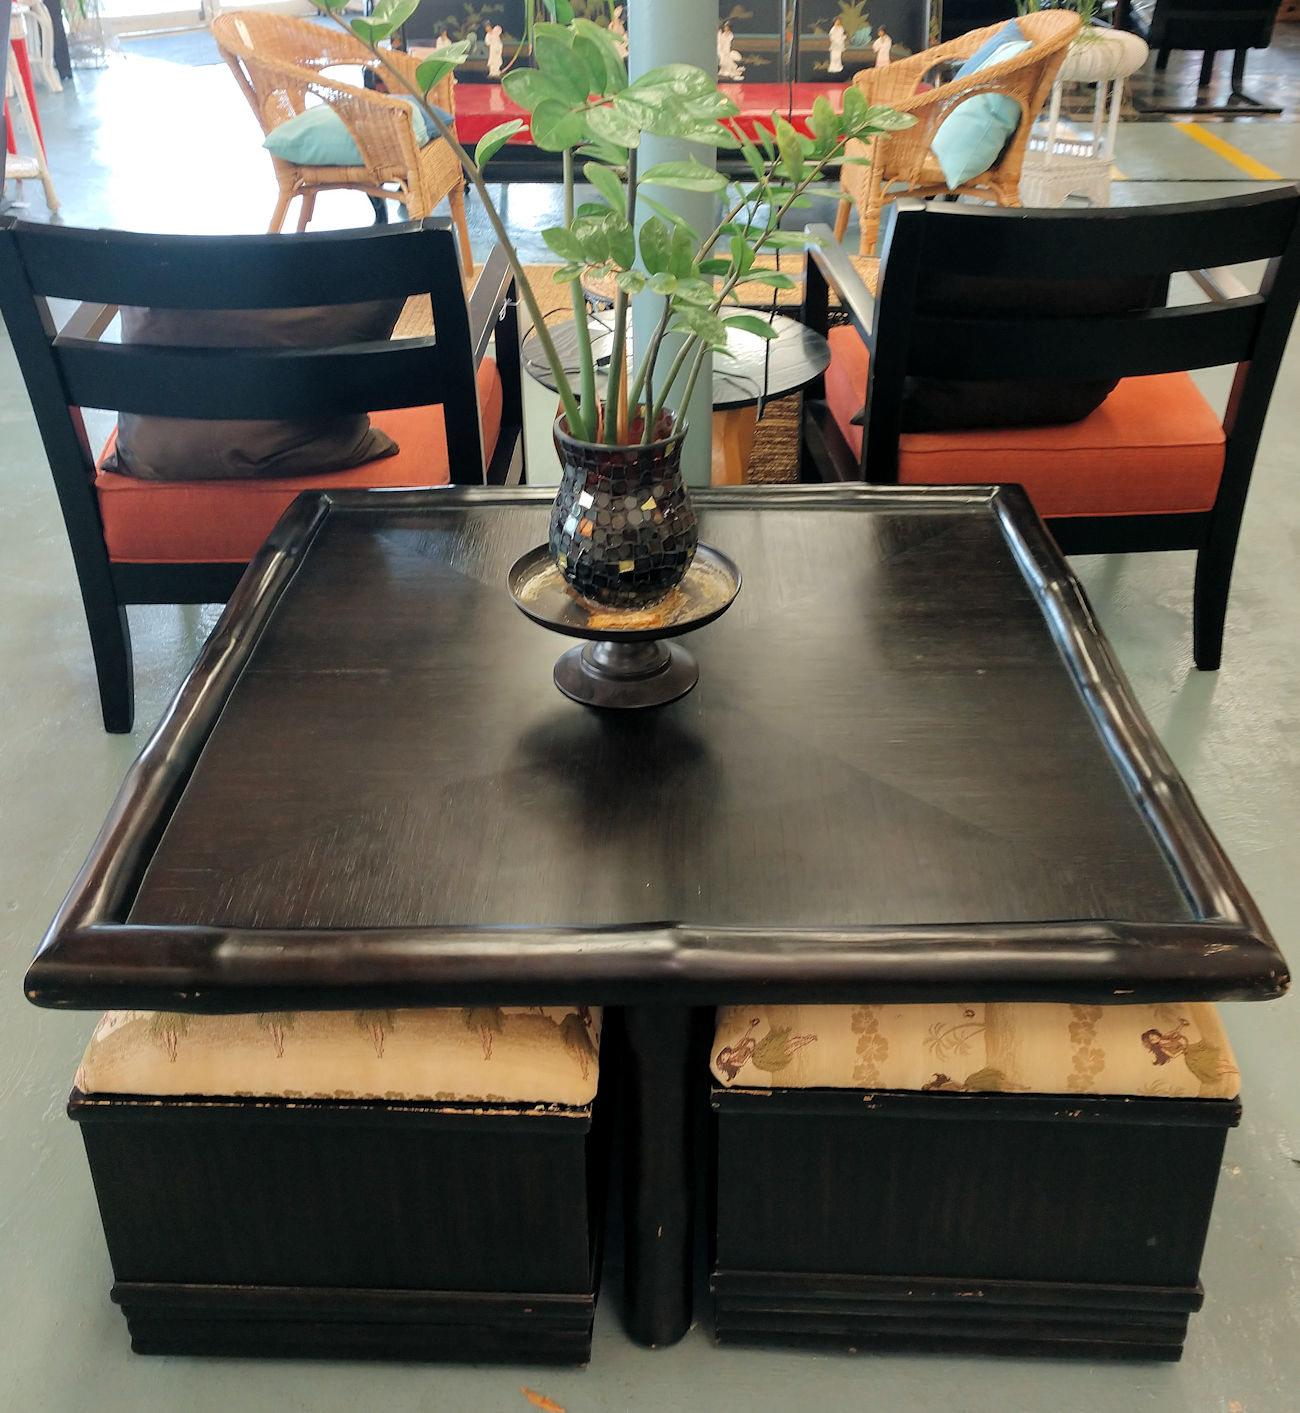 LR0247-Coffee-Table-4-stools